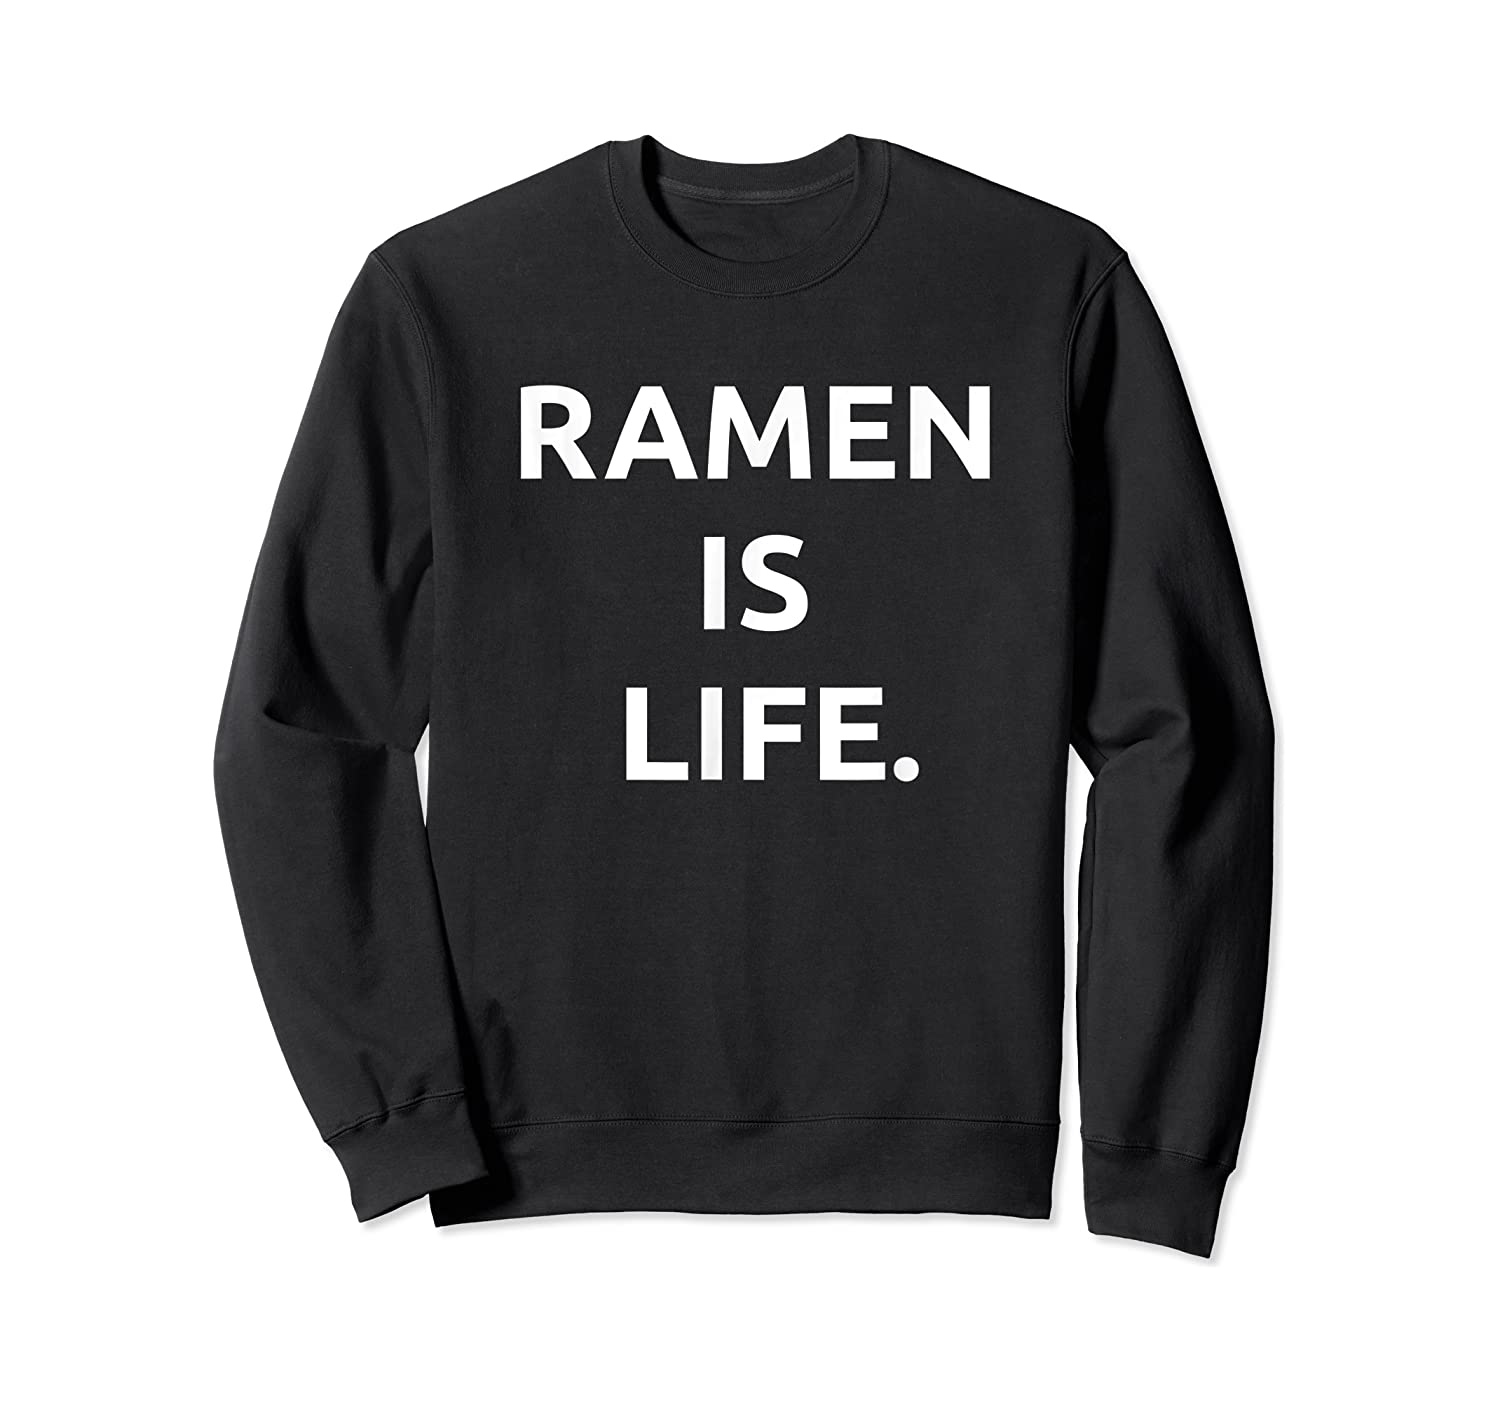 Ra Is Life Tshirt For Noodles Lover Crewneck Sweater